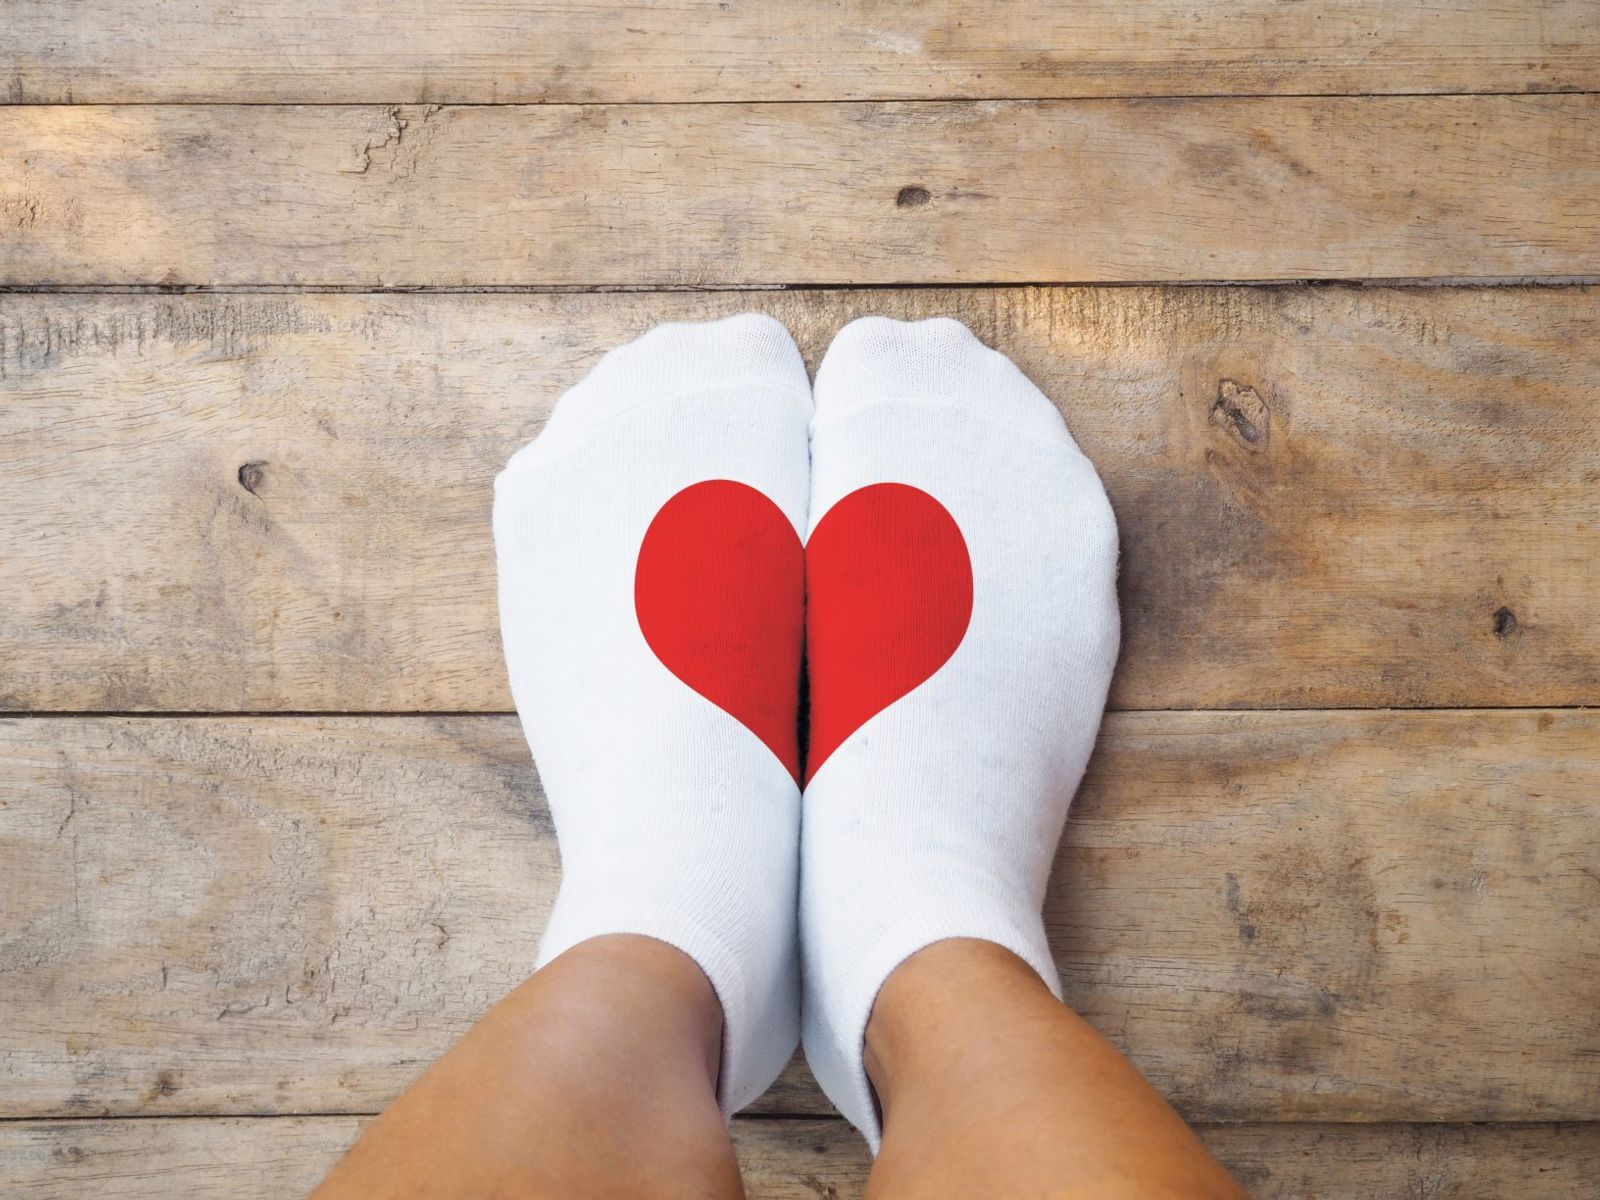 Get rid of unhealthy shoes and your feet will love you!